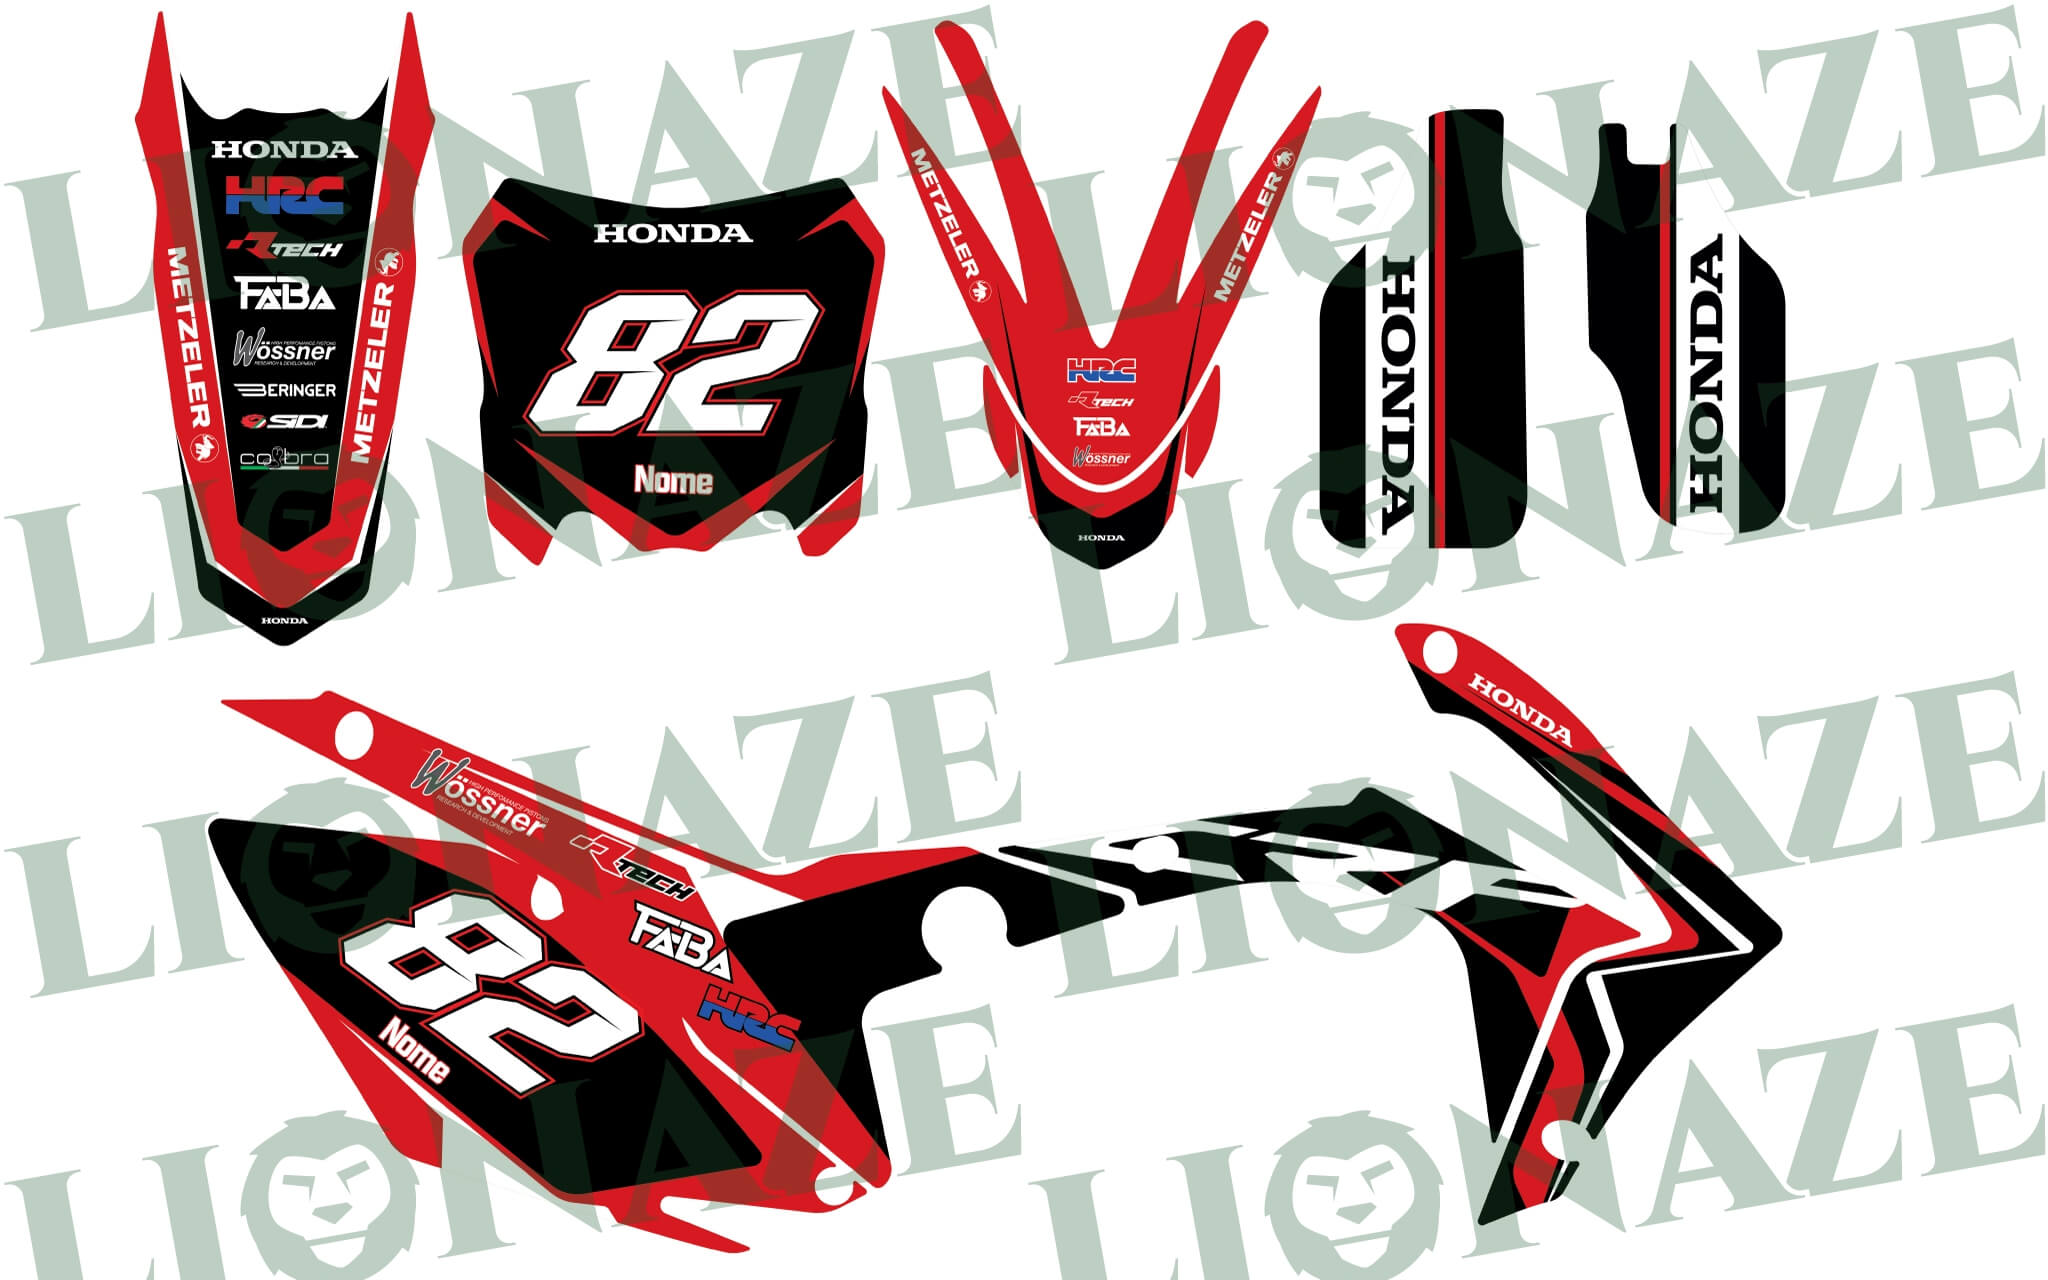 Customized Decal kit Honda Wossner for CRF250 2014 – 2016, CRF450 2013 – 2016, CRF450R